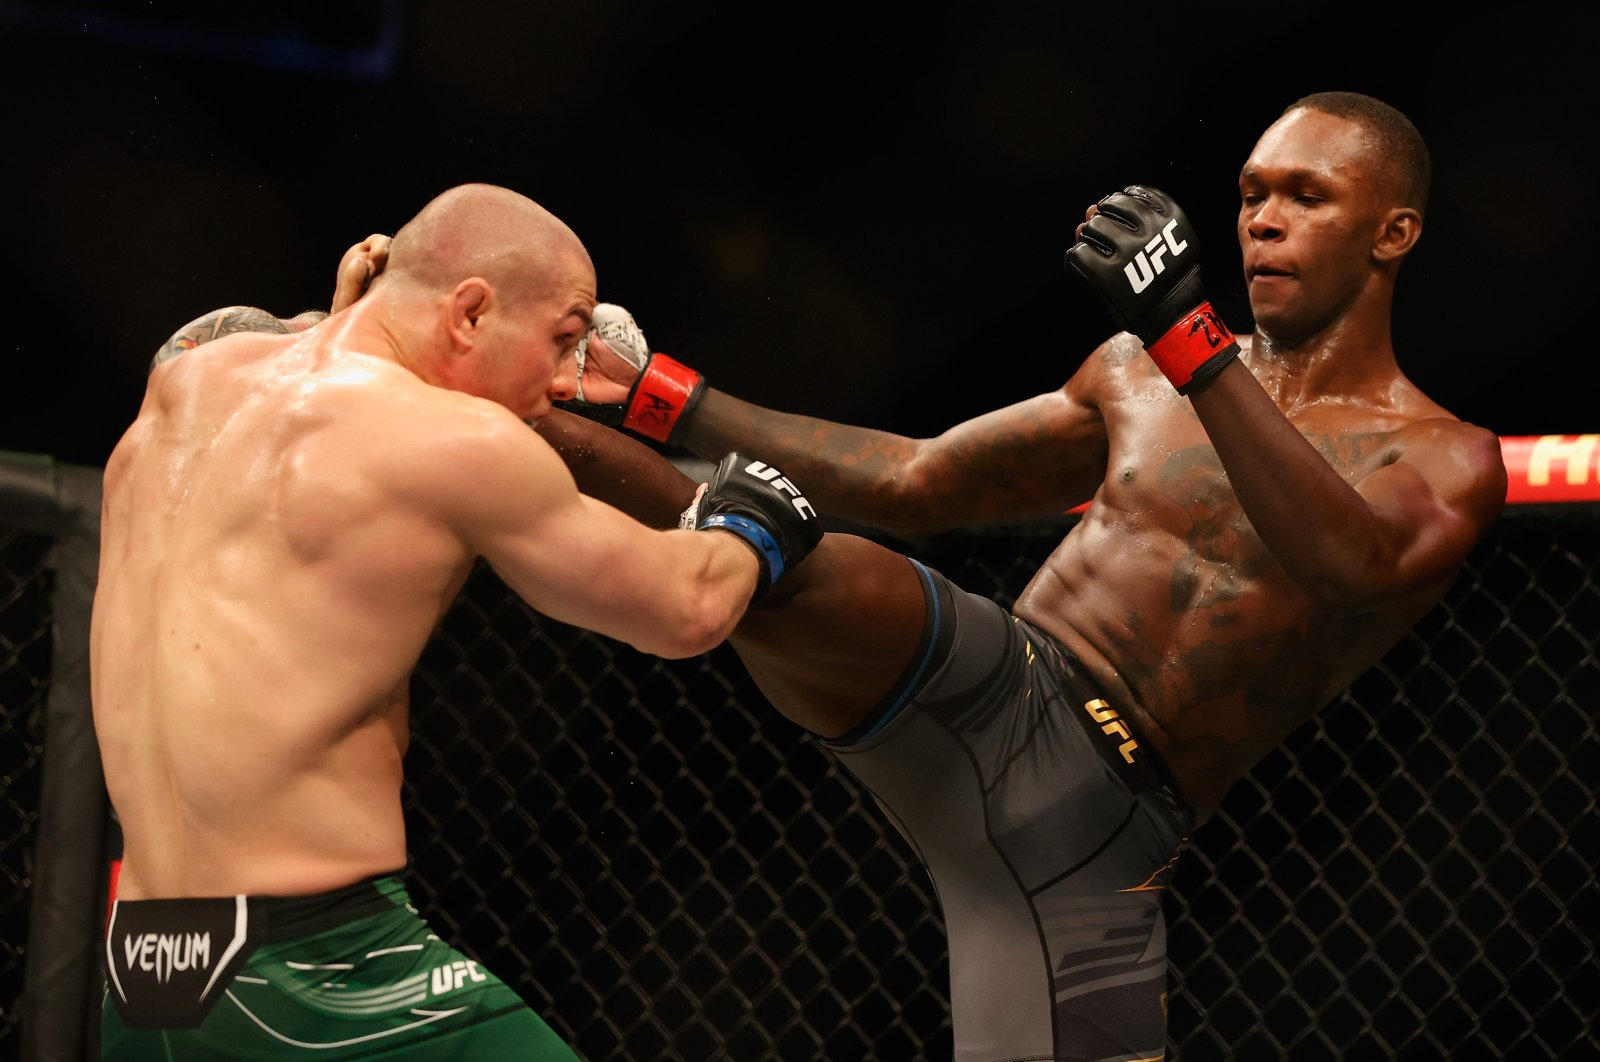 Israel Adesanya fights Marvin Vettori during their UFC 263 middleweight championship match at Gila River Arena, Glendale, Arizona, U.S., June 12, 2021.